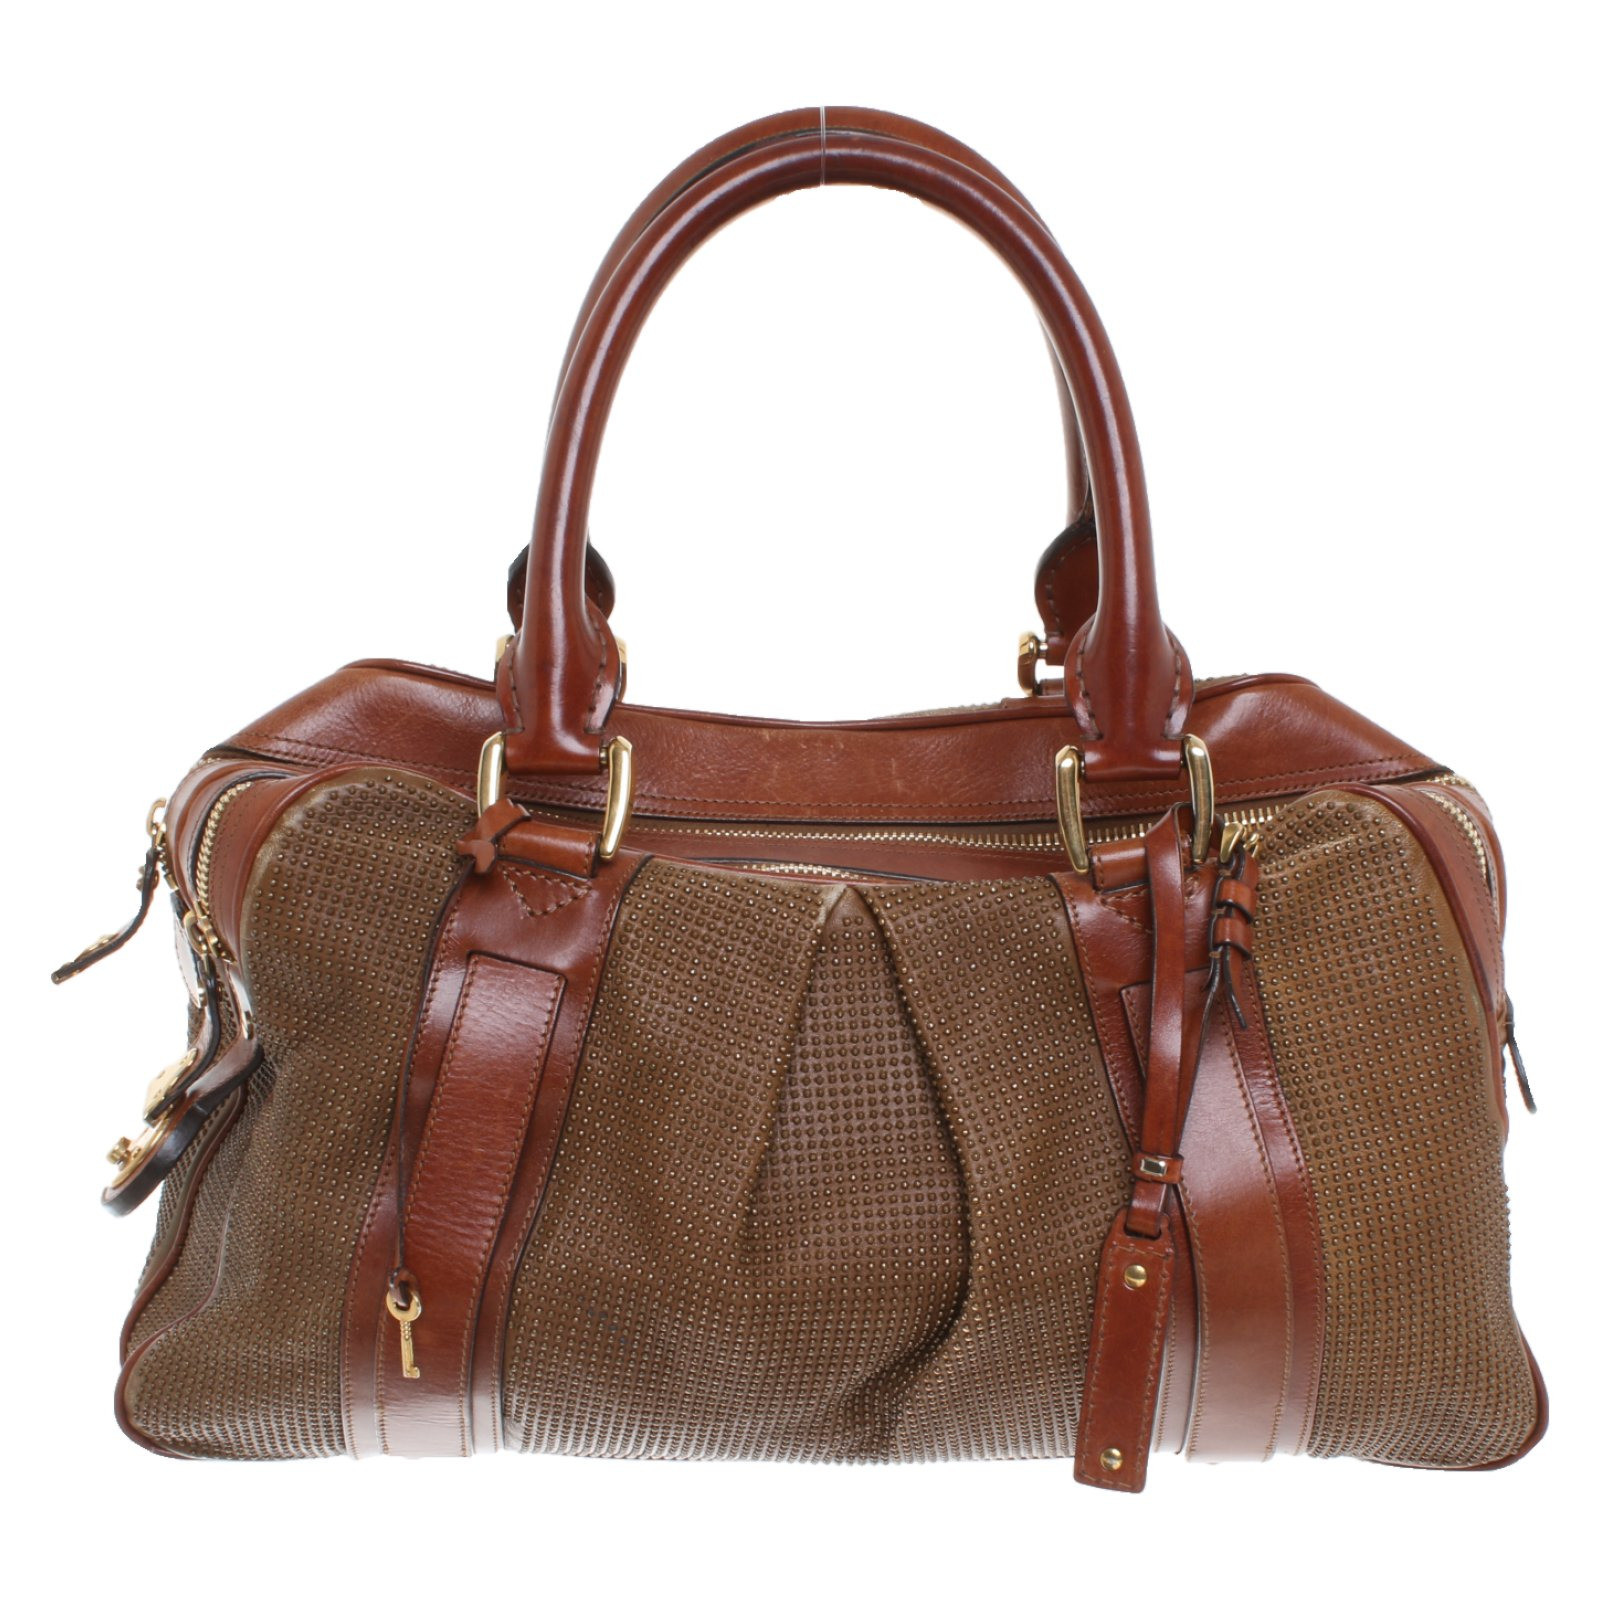 Burberry Prorsum Handbag Leather In